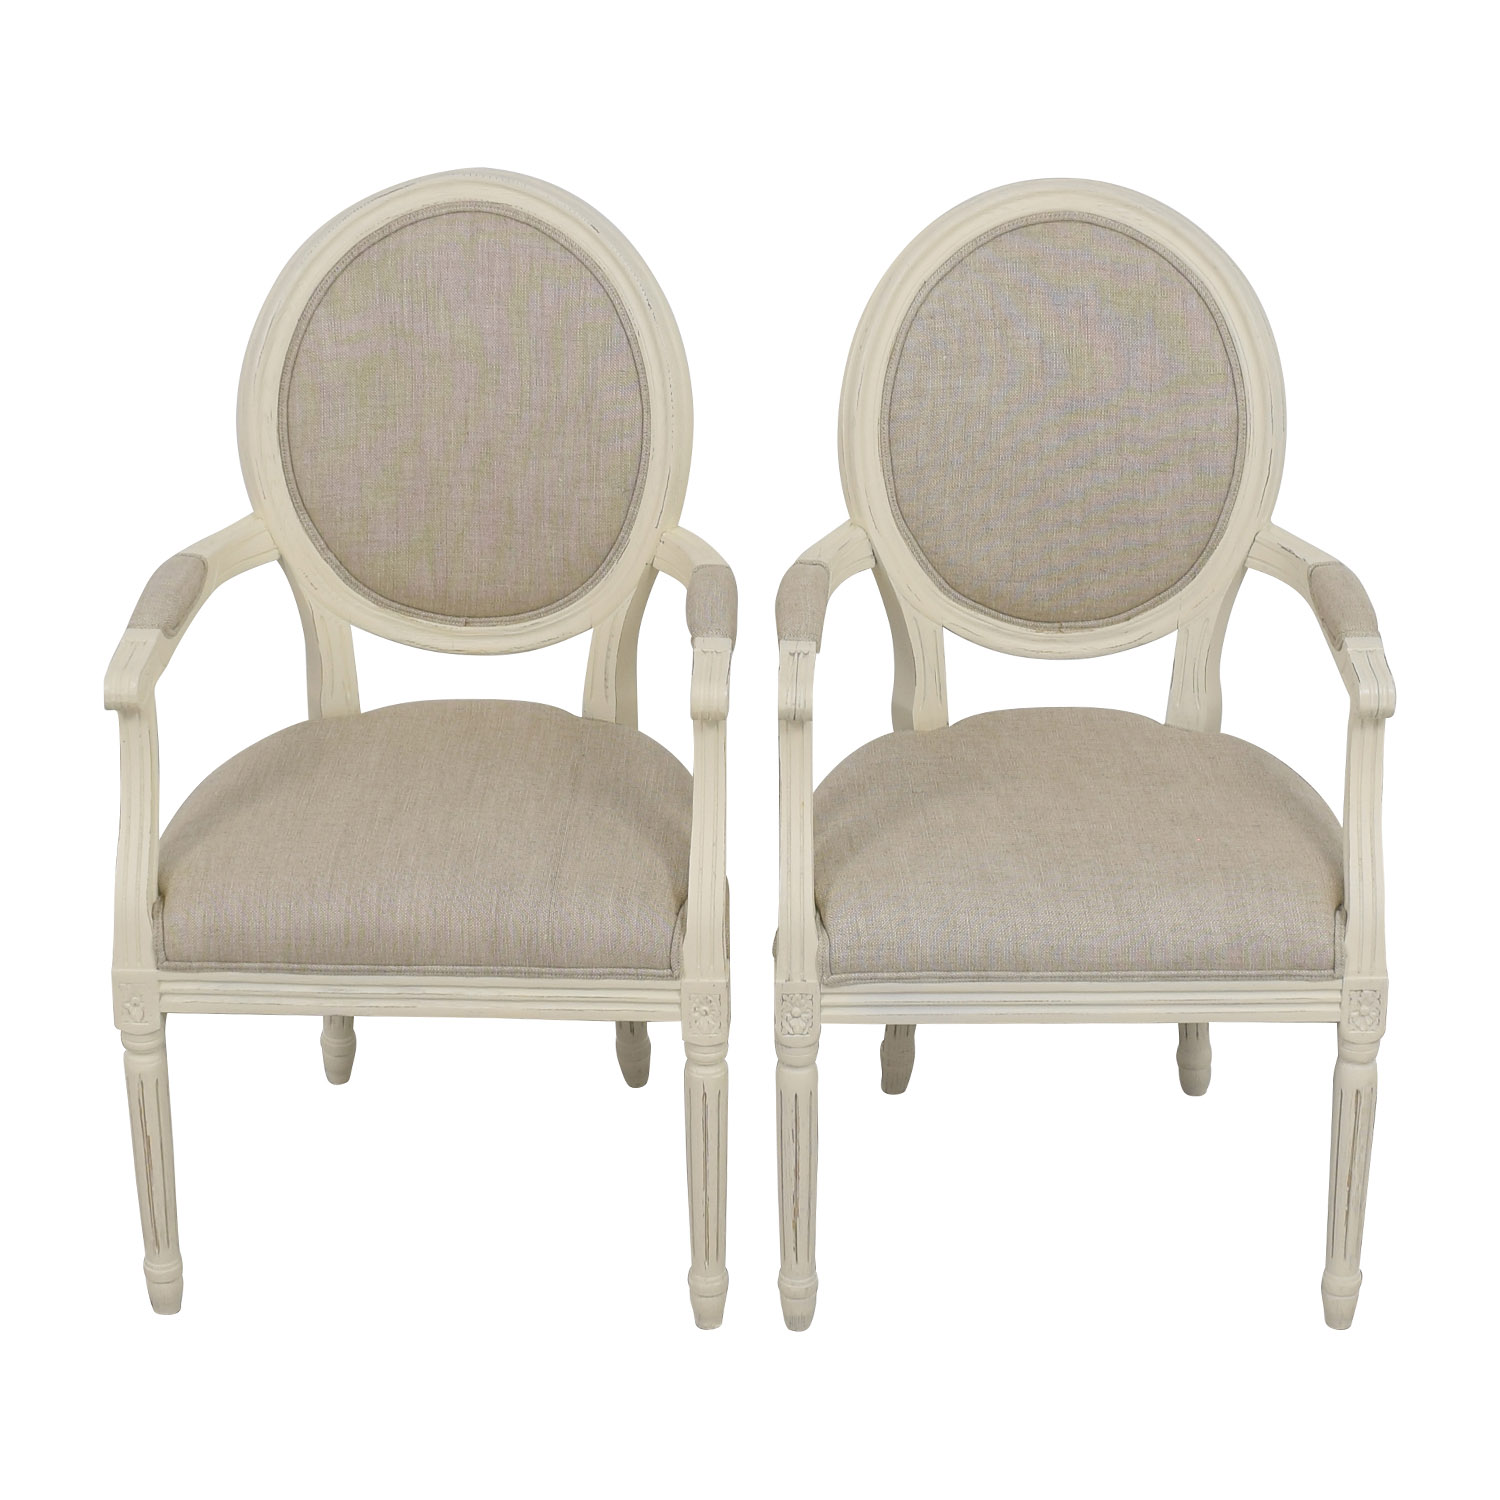 Restoration Hardware Restoration Hardware Beige French Chairs Chairs